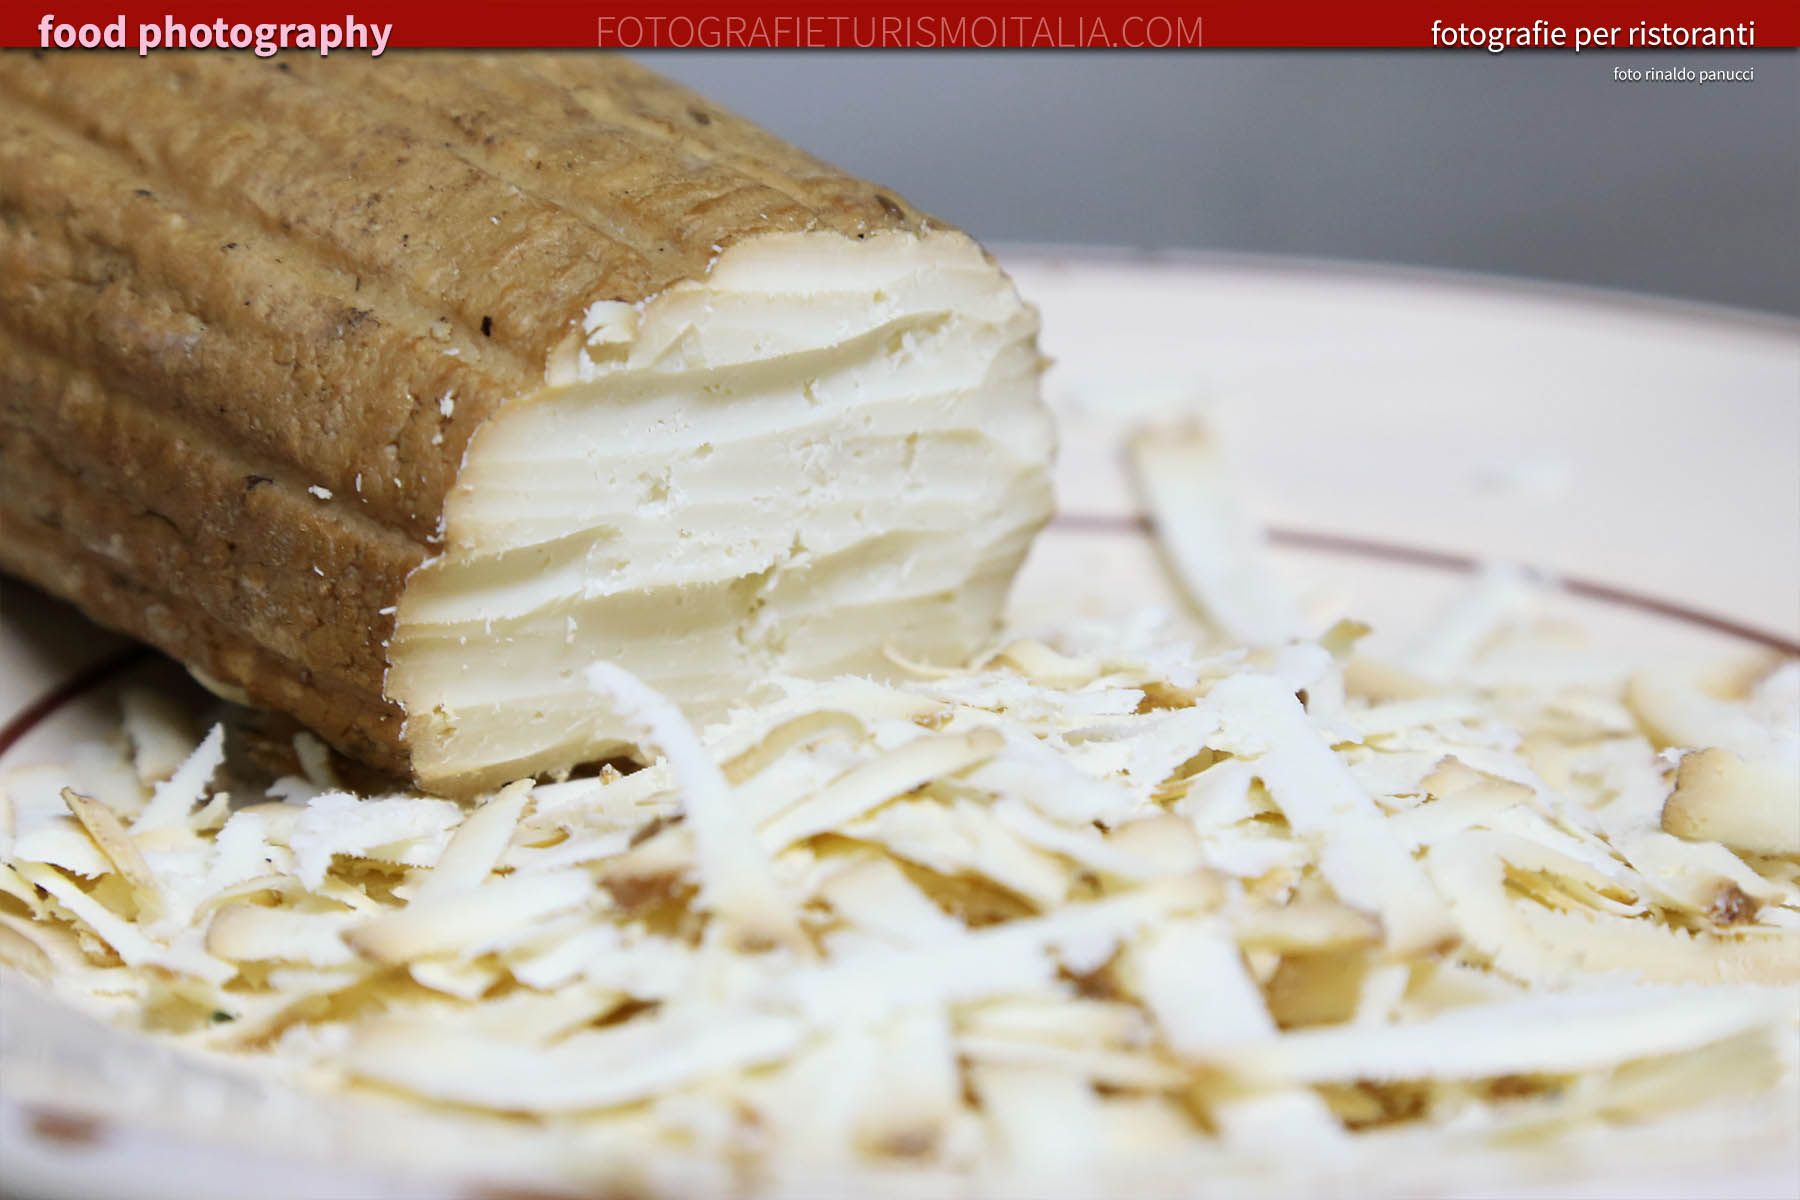 Fotografie per ristoranti, food photography.